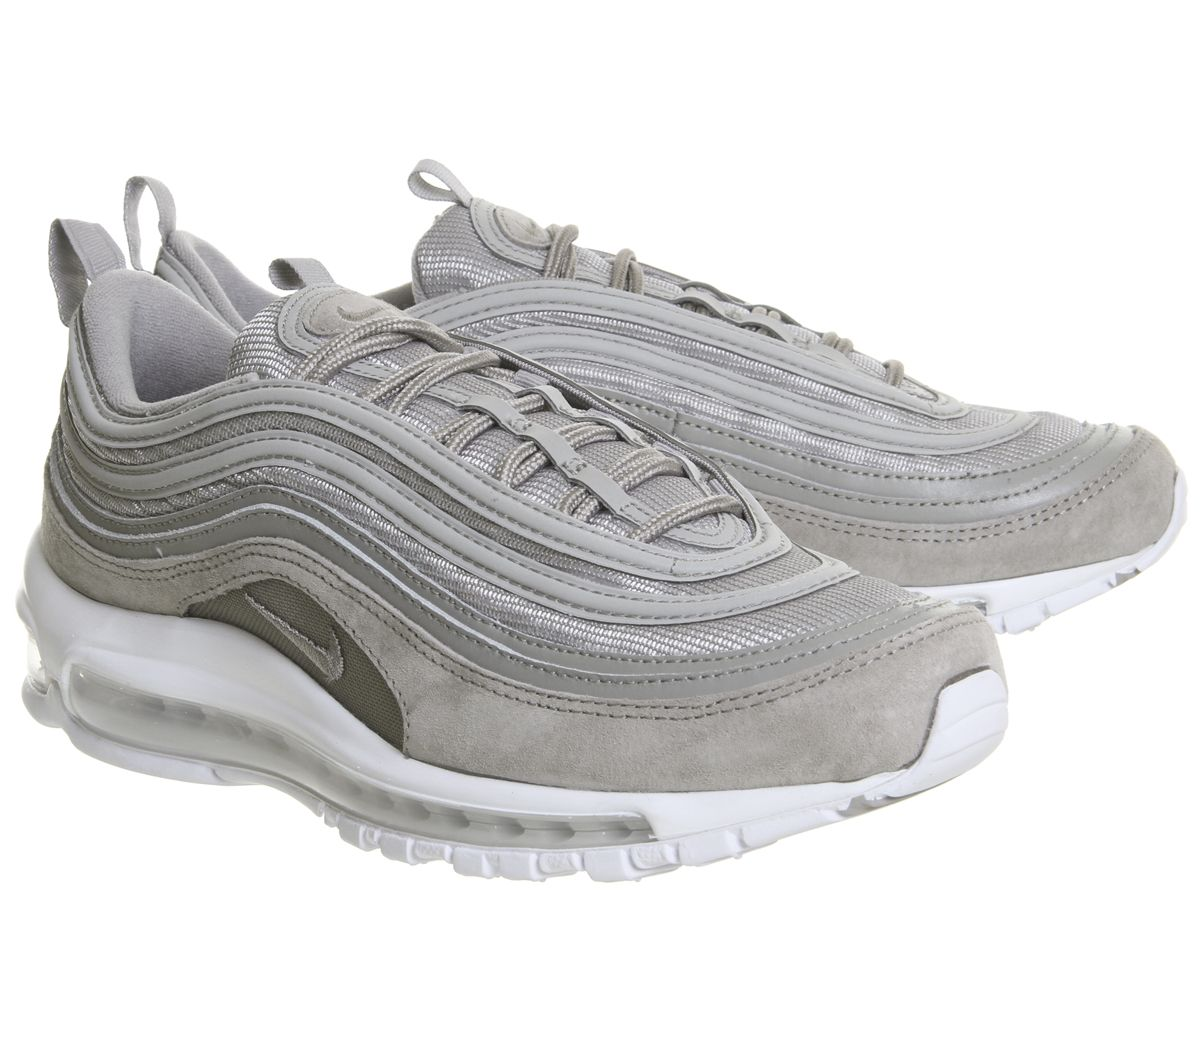 9c5e74a8c5 Nike Air Max 97 Trainers Cobblestone White - His trainers